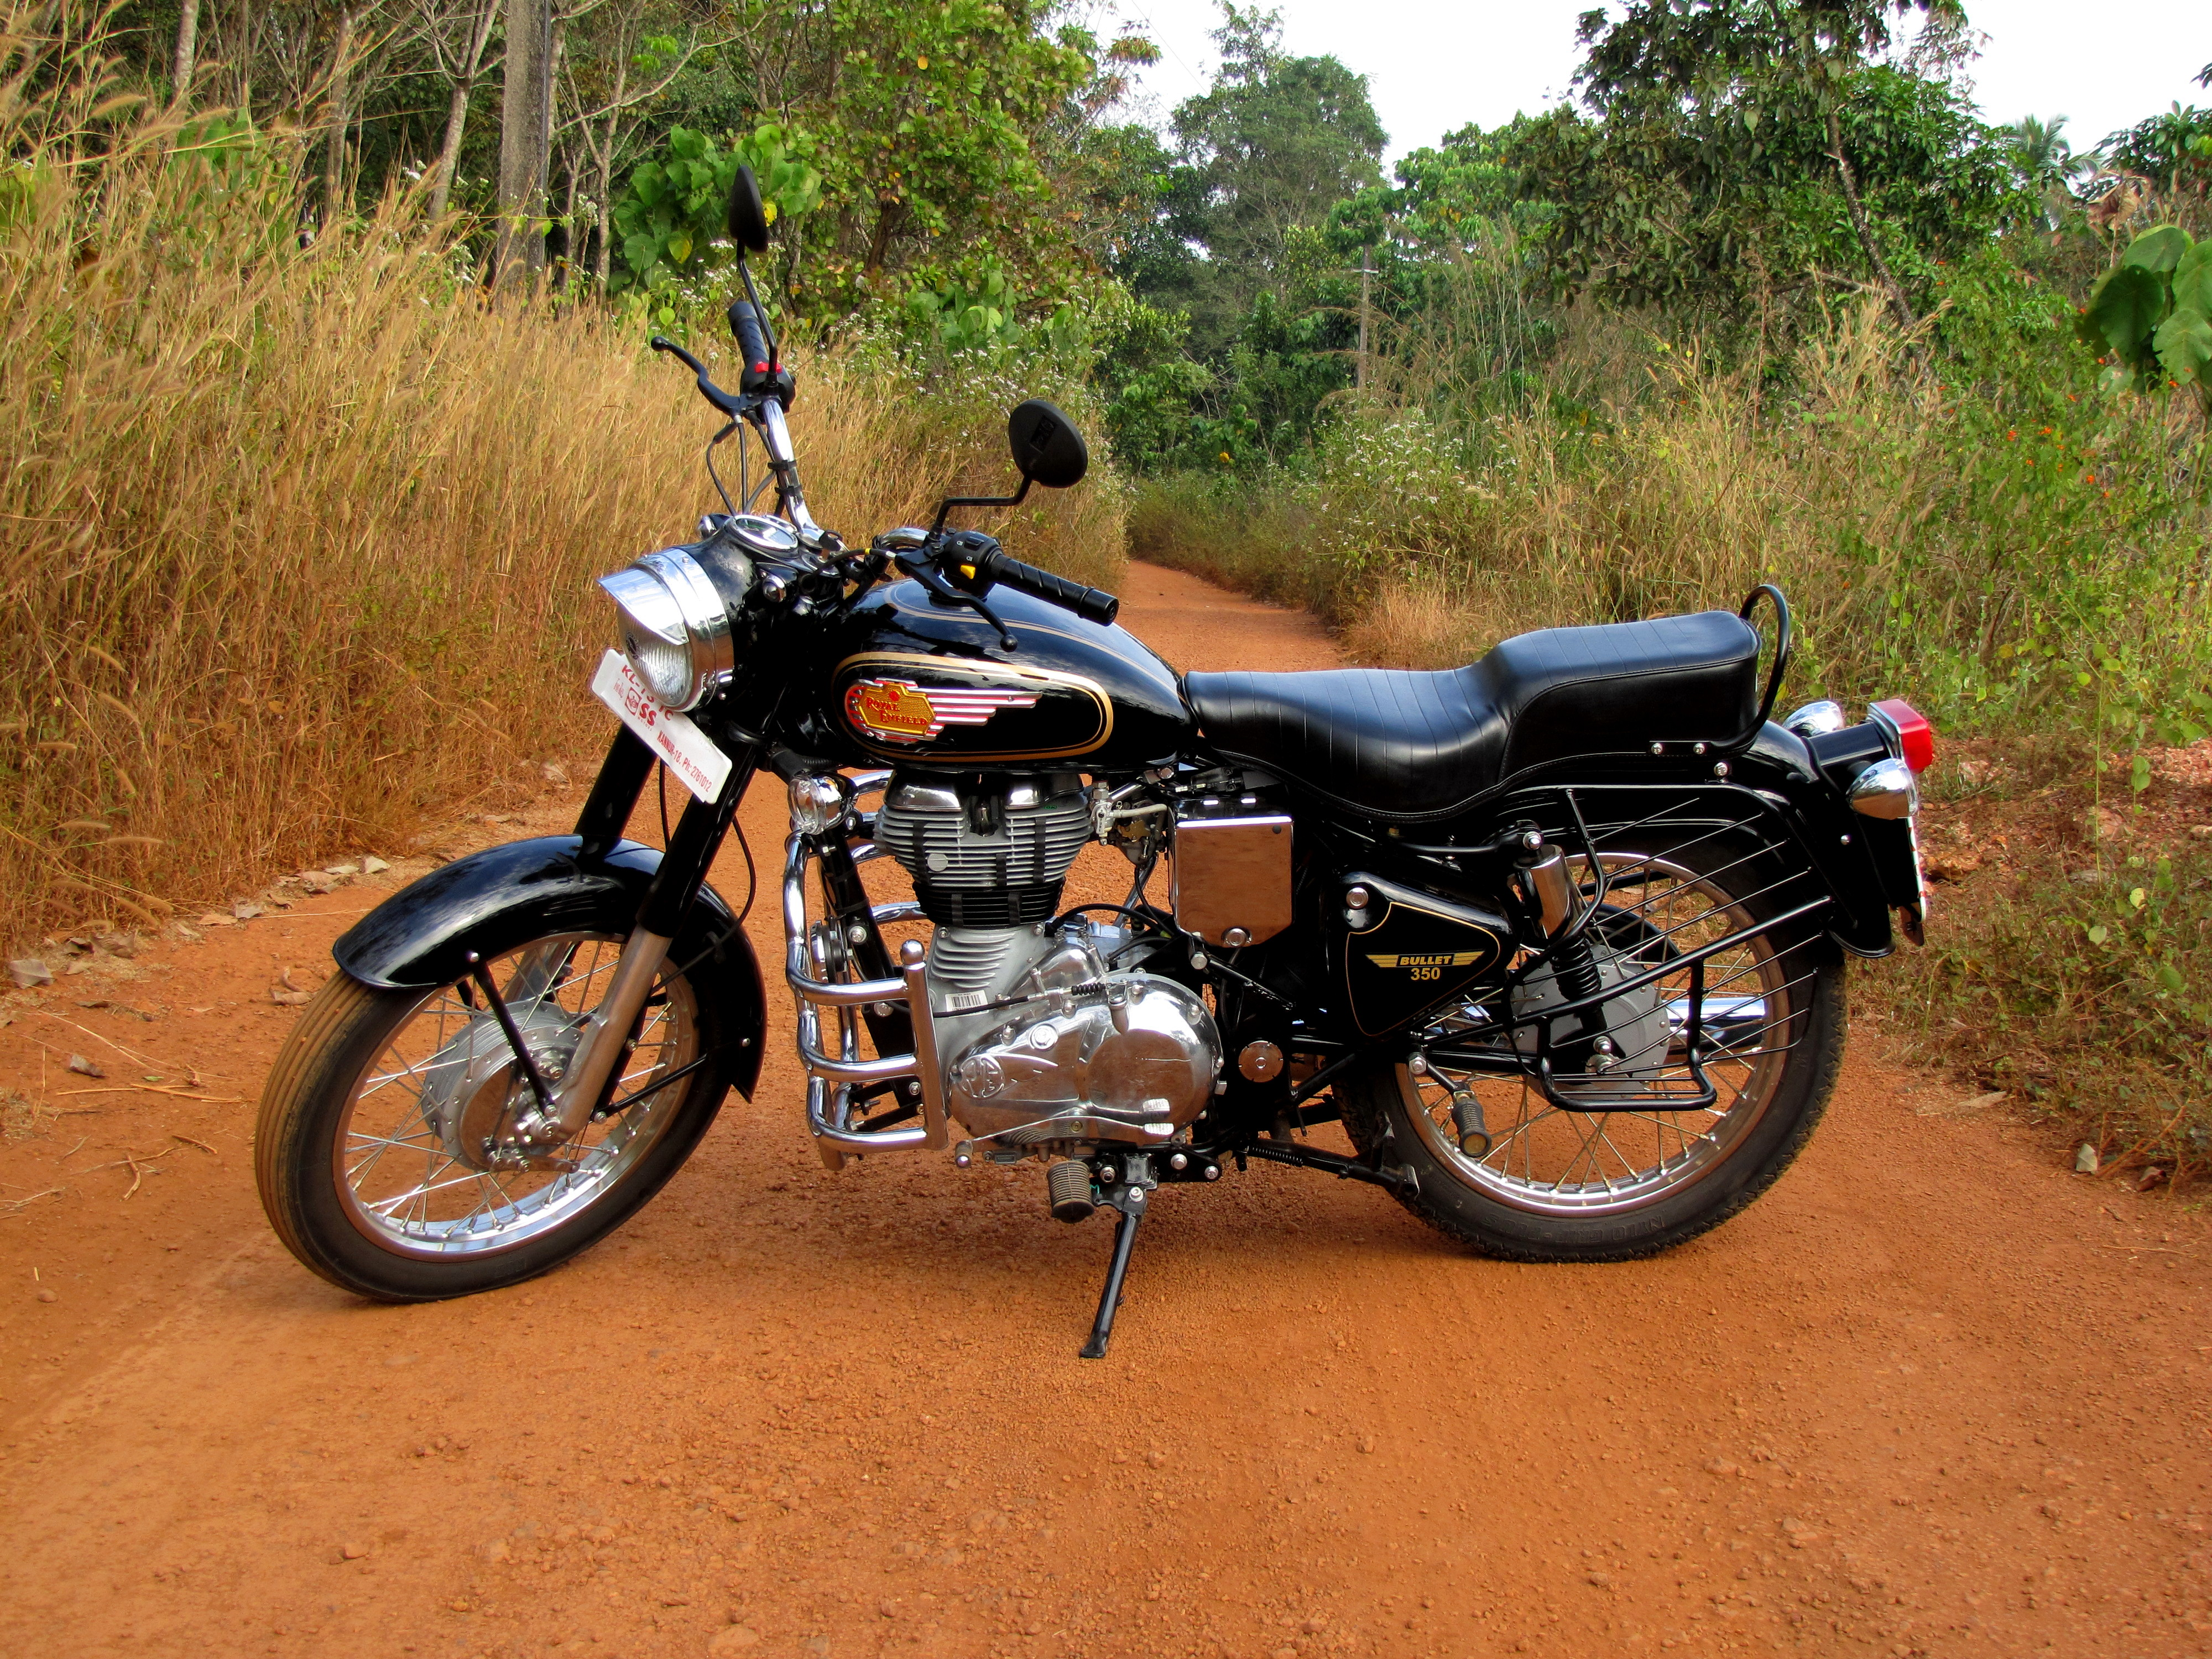 Royal Enfield Bullet 350 Classic 2007 images #123968